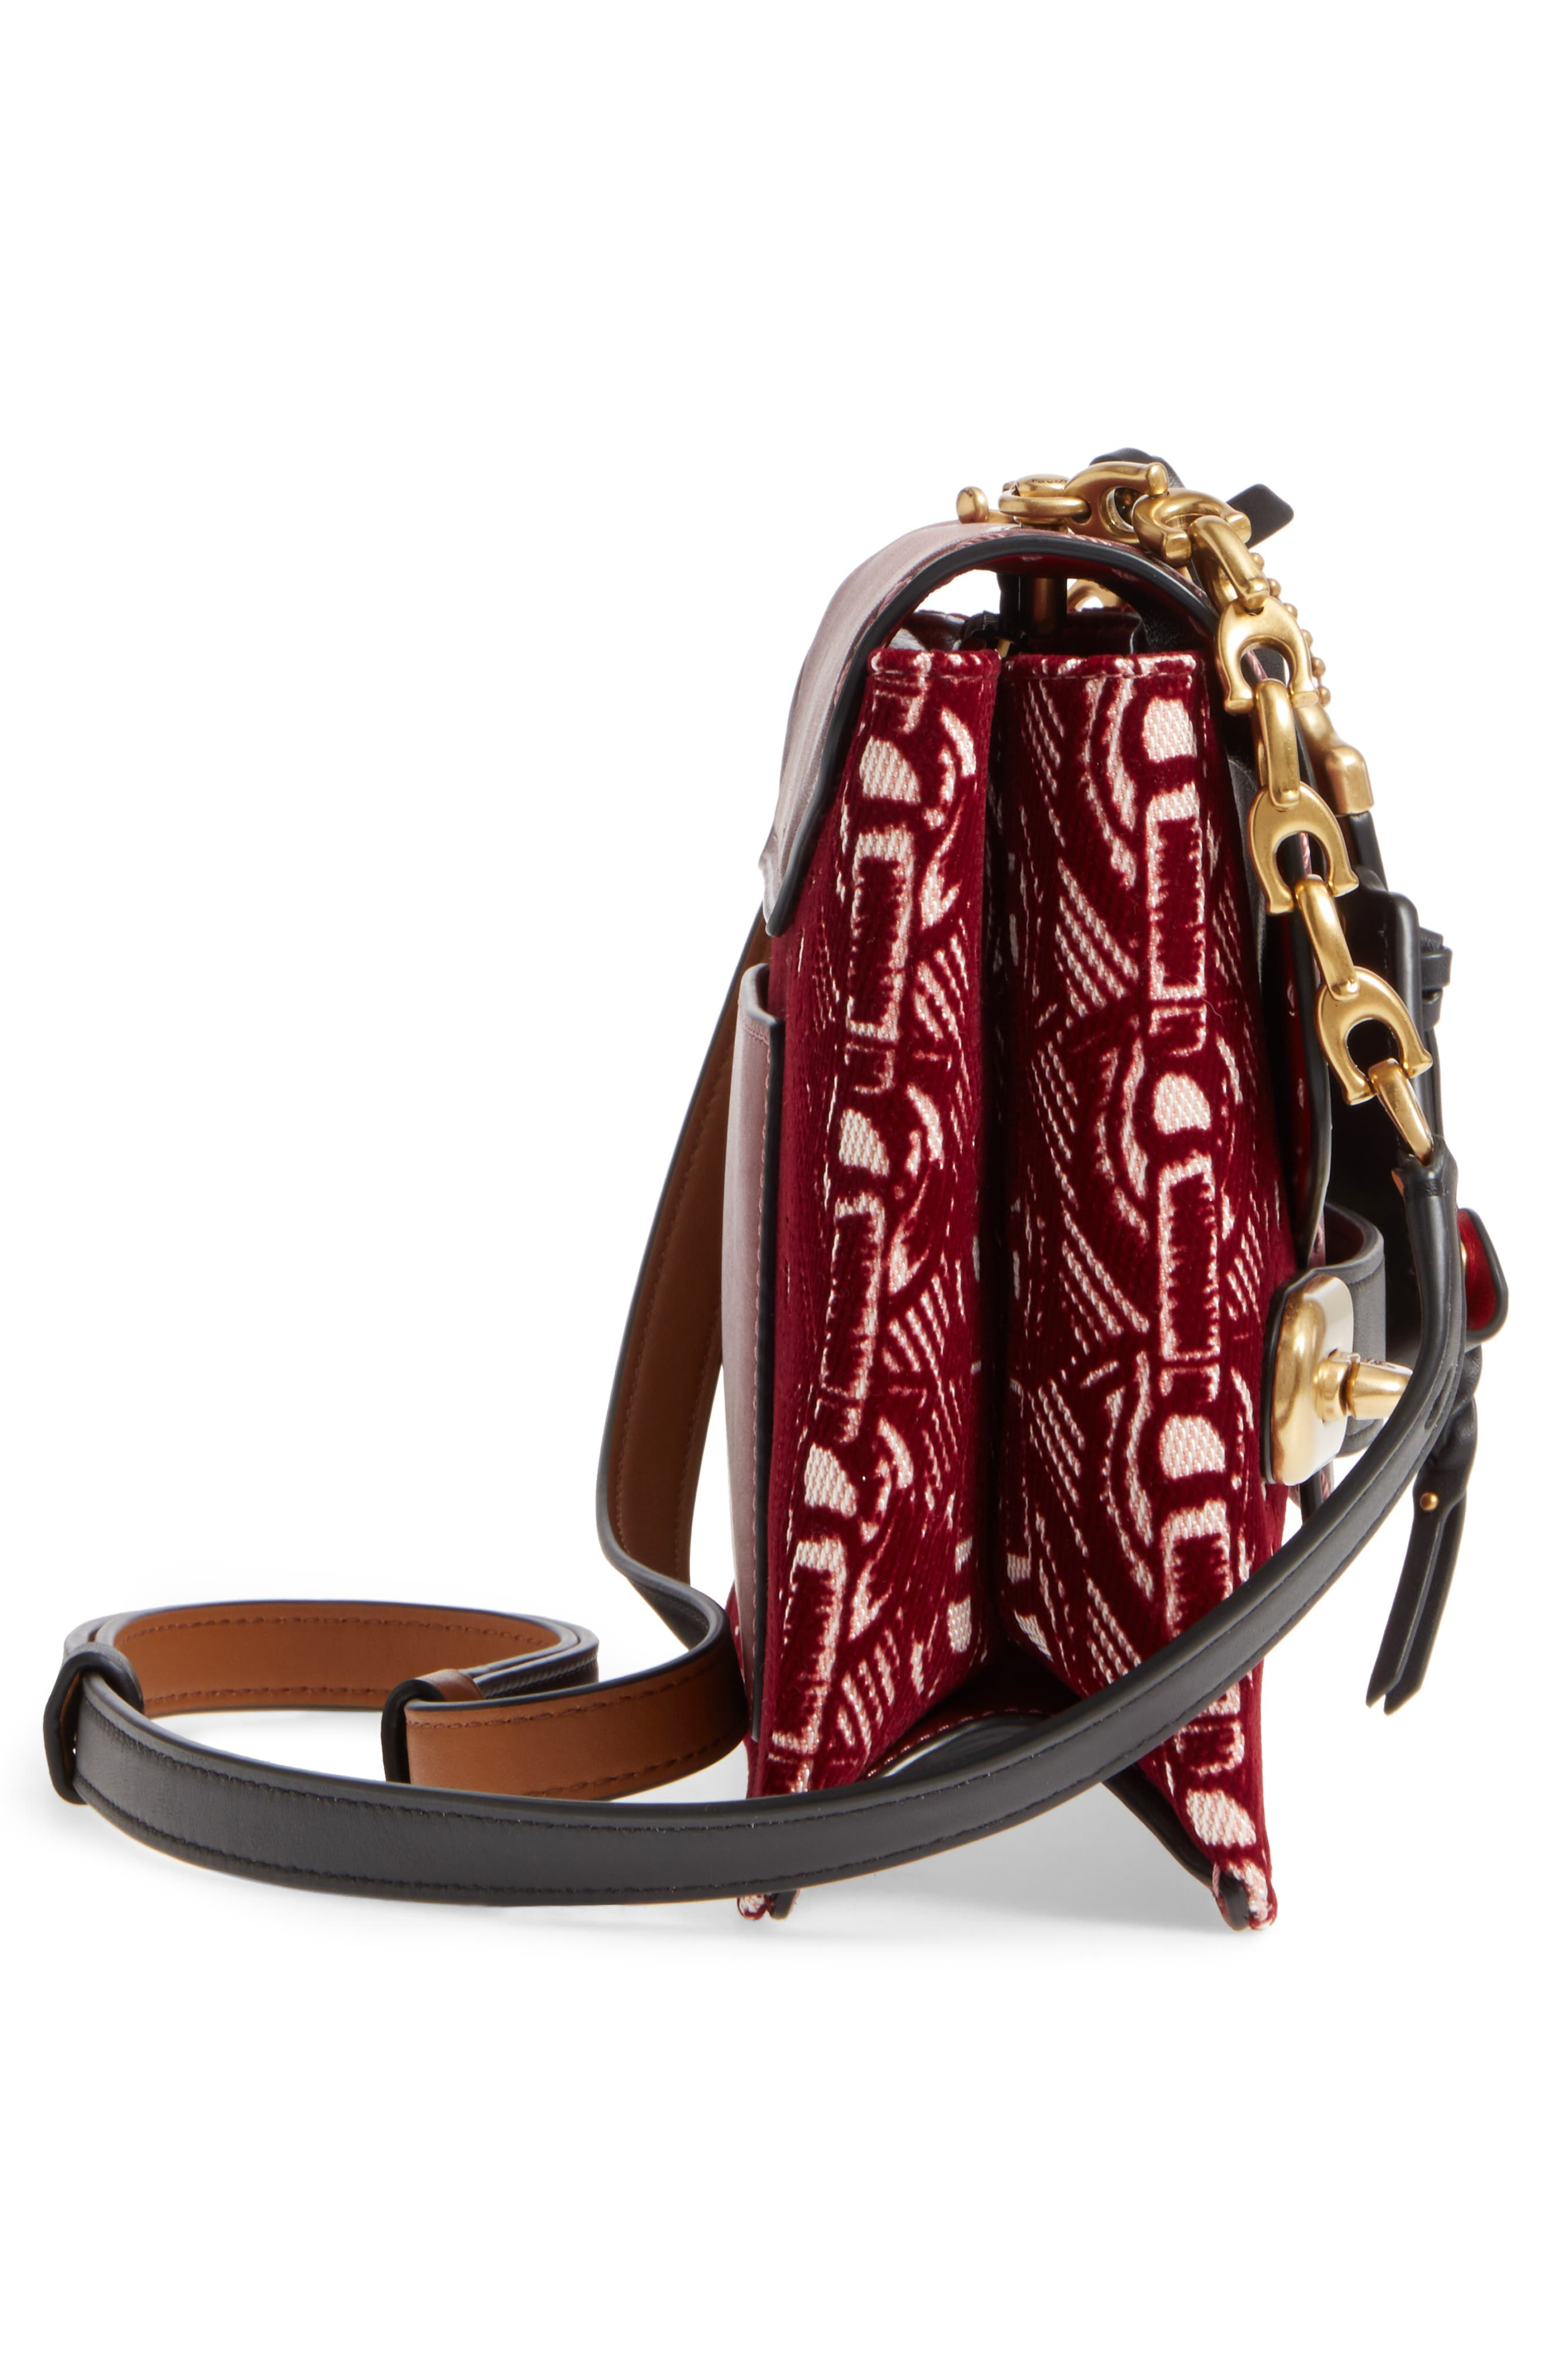 Swagger Chain Leather Crossbody Bag,                             Alternate thumbnail 5, color,                             Bordeaux